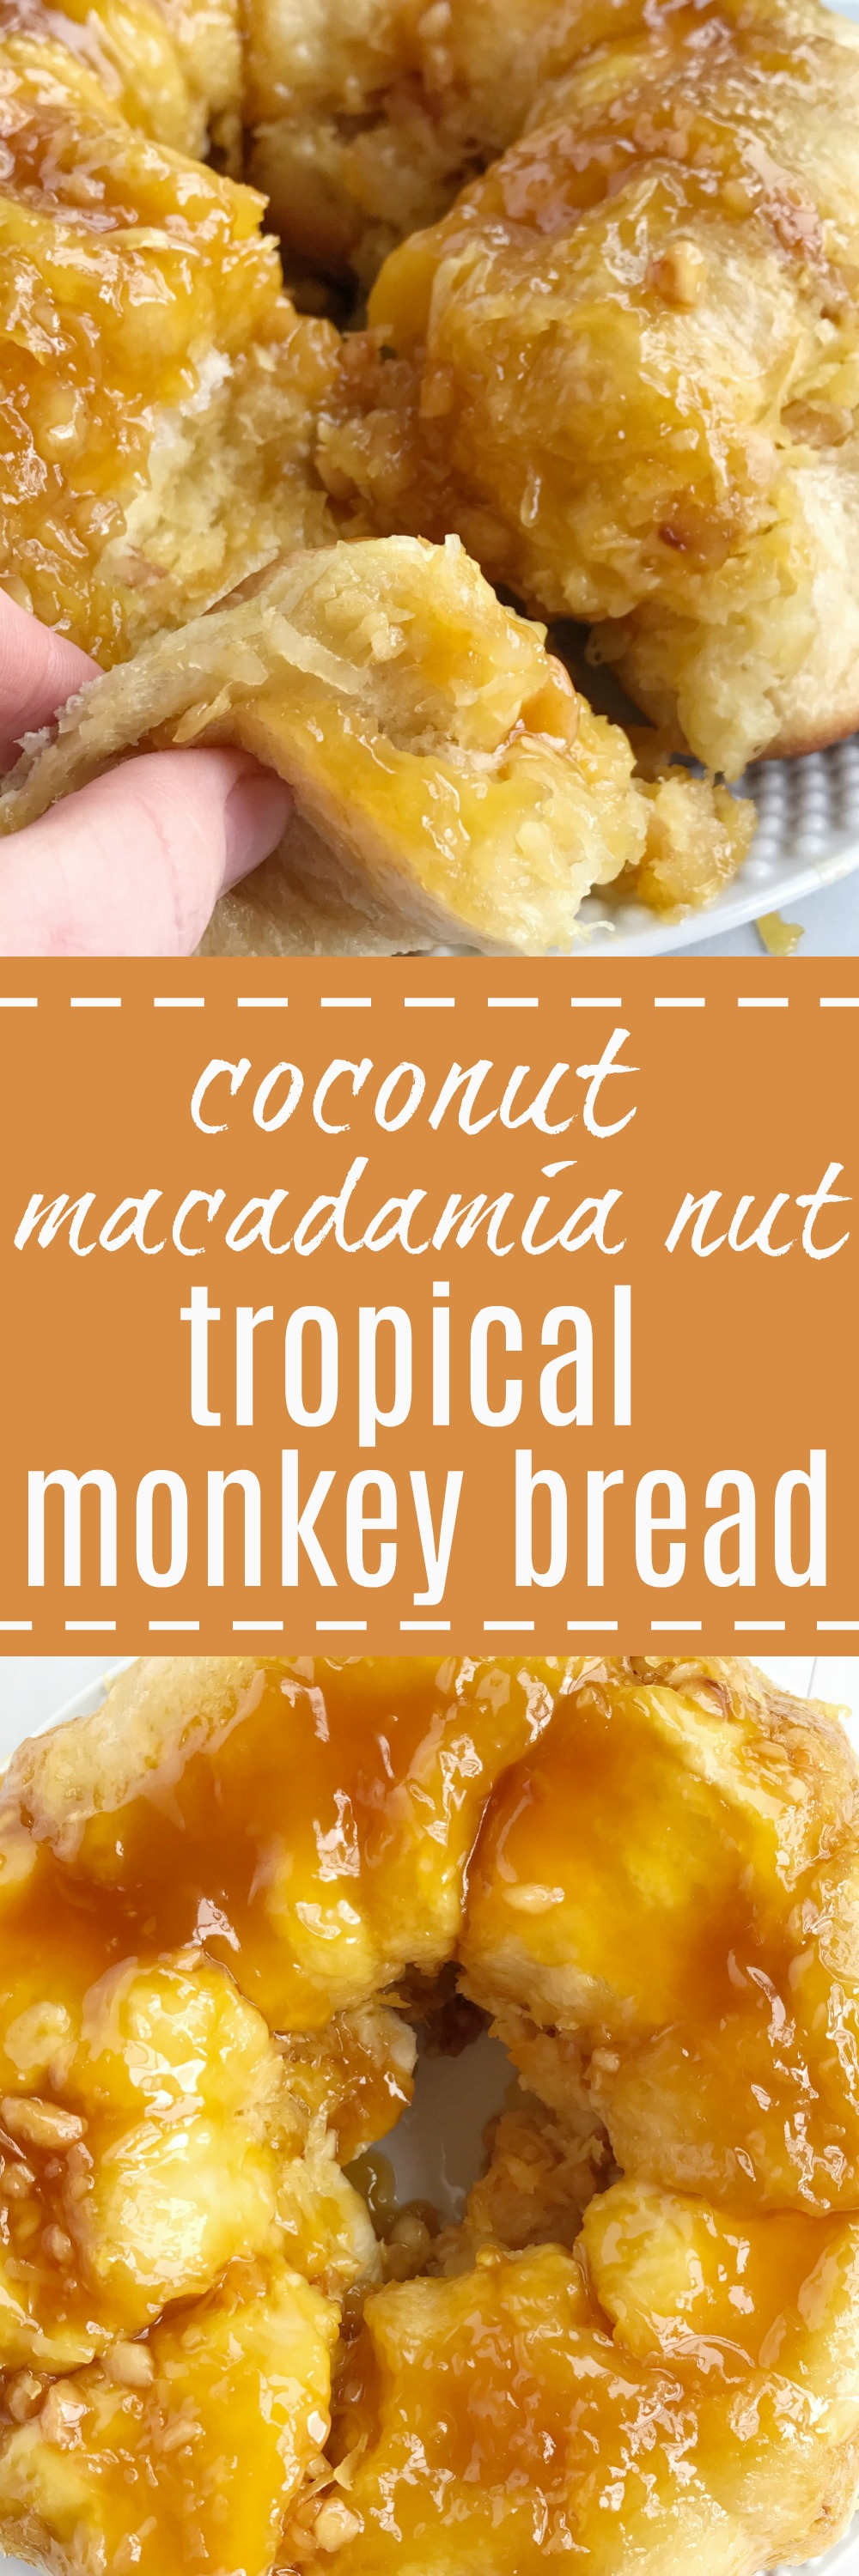 Tropical Monkey Bread Together As Family